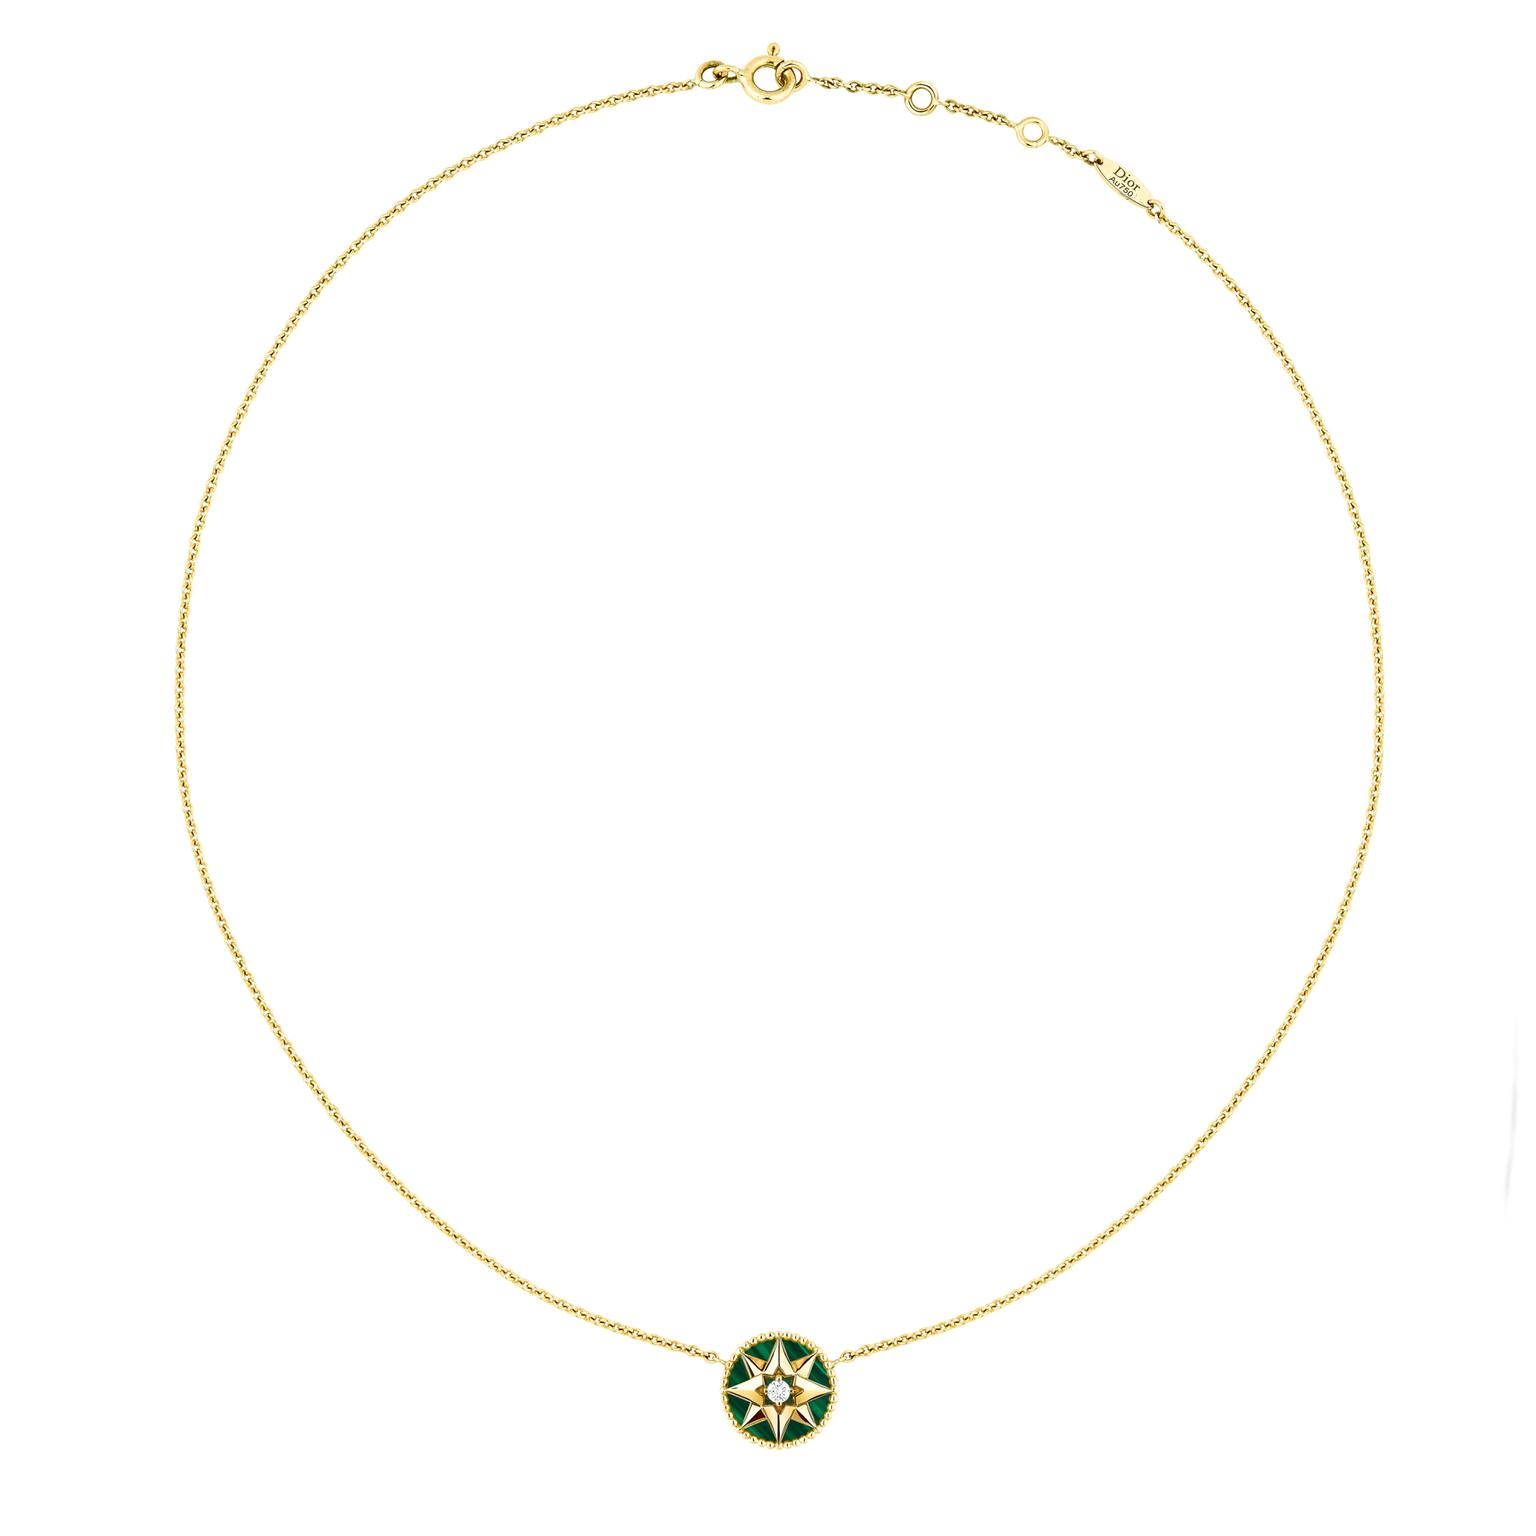 Dior Rose des Vents malachite necklace